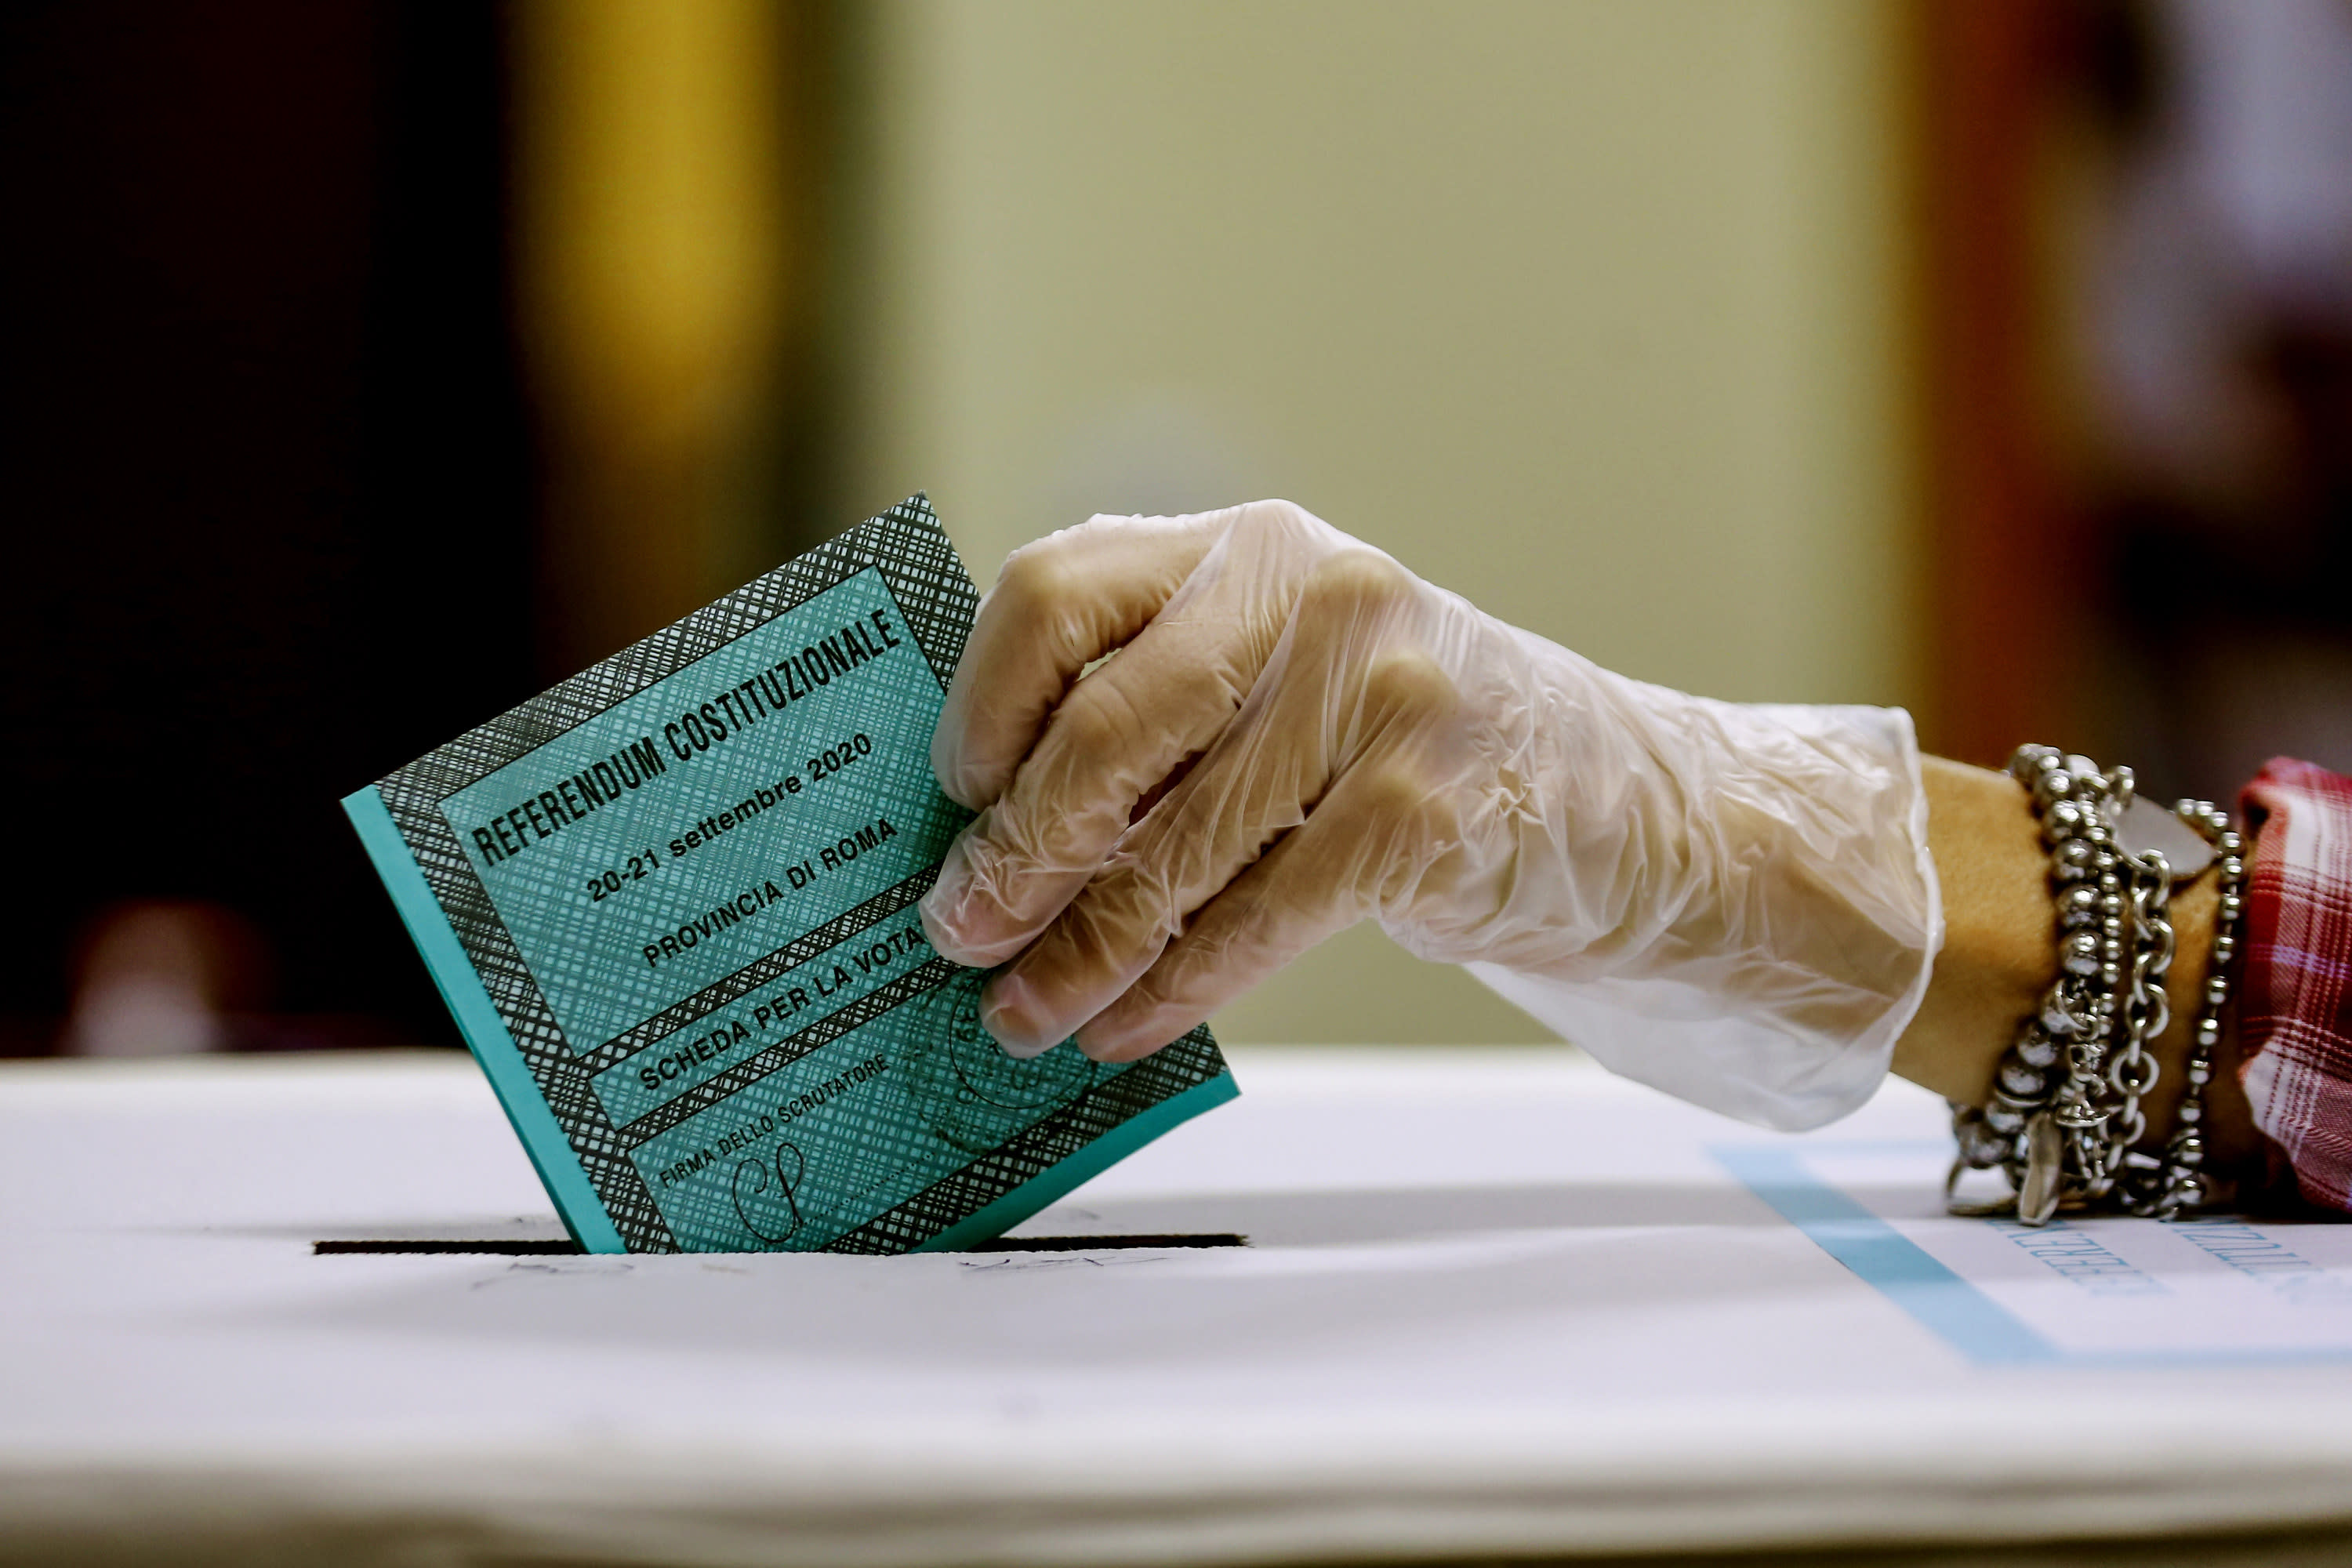 A woman casts her ballot at a polling station, in Rome, Monday, Sept. 21, 2020. On Sunday and Monday Italians are called to vote nationwide in a referendum to confirm a historical change to the country's constitution to drastically reduce the number of Members of Parliament from 945 to 600. Eighteen million of Italian citizens will also vote on Sunday and Monday to renew local governors in seven regions, along with mayors in approximately 1,000 cities. (Cecilia Fabiano/Lapresse via AP)